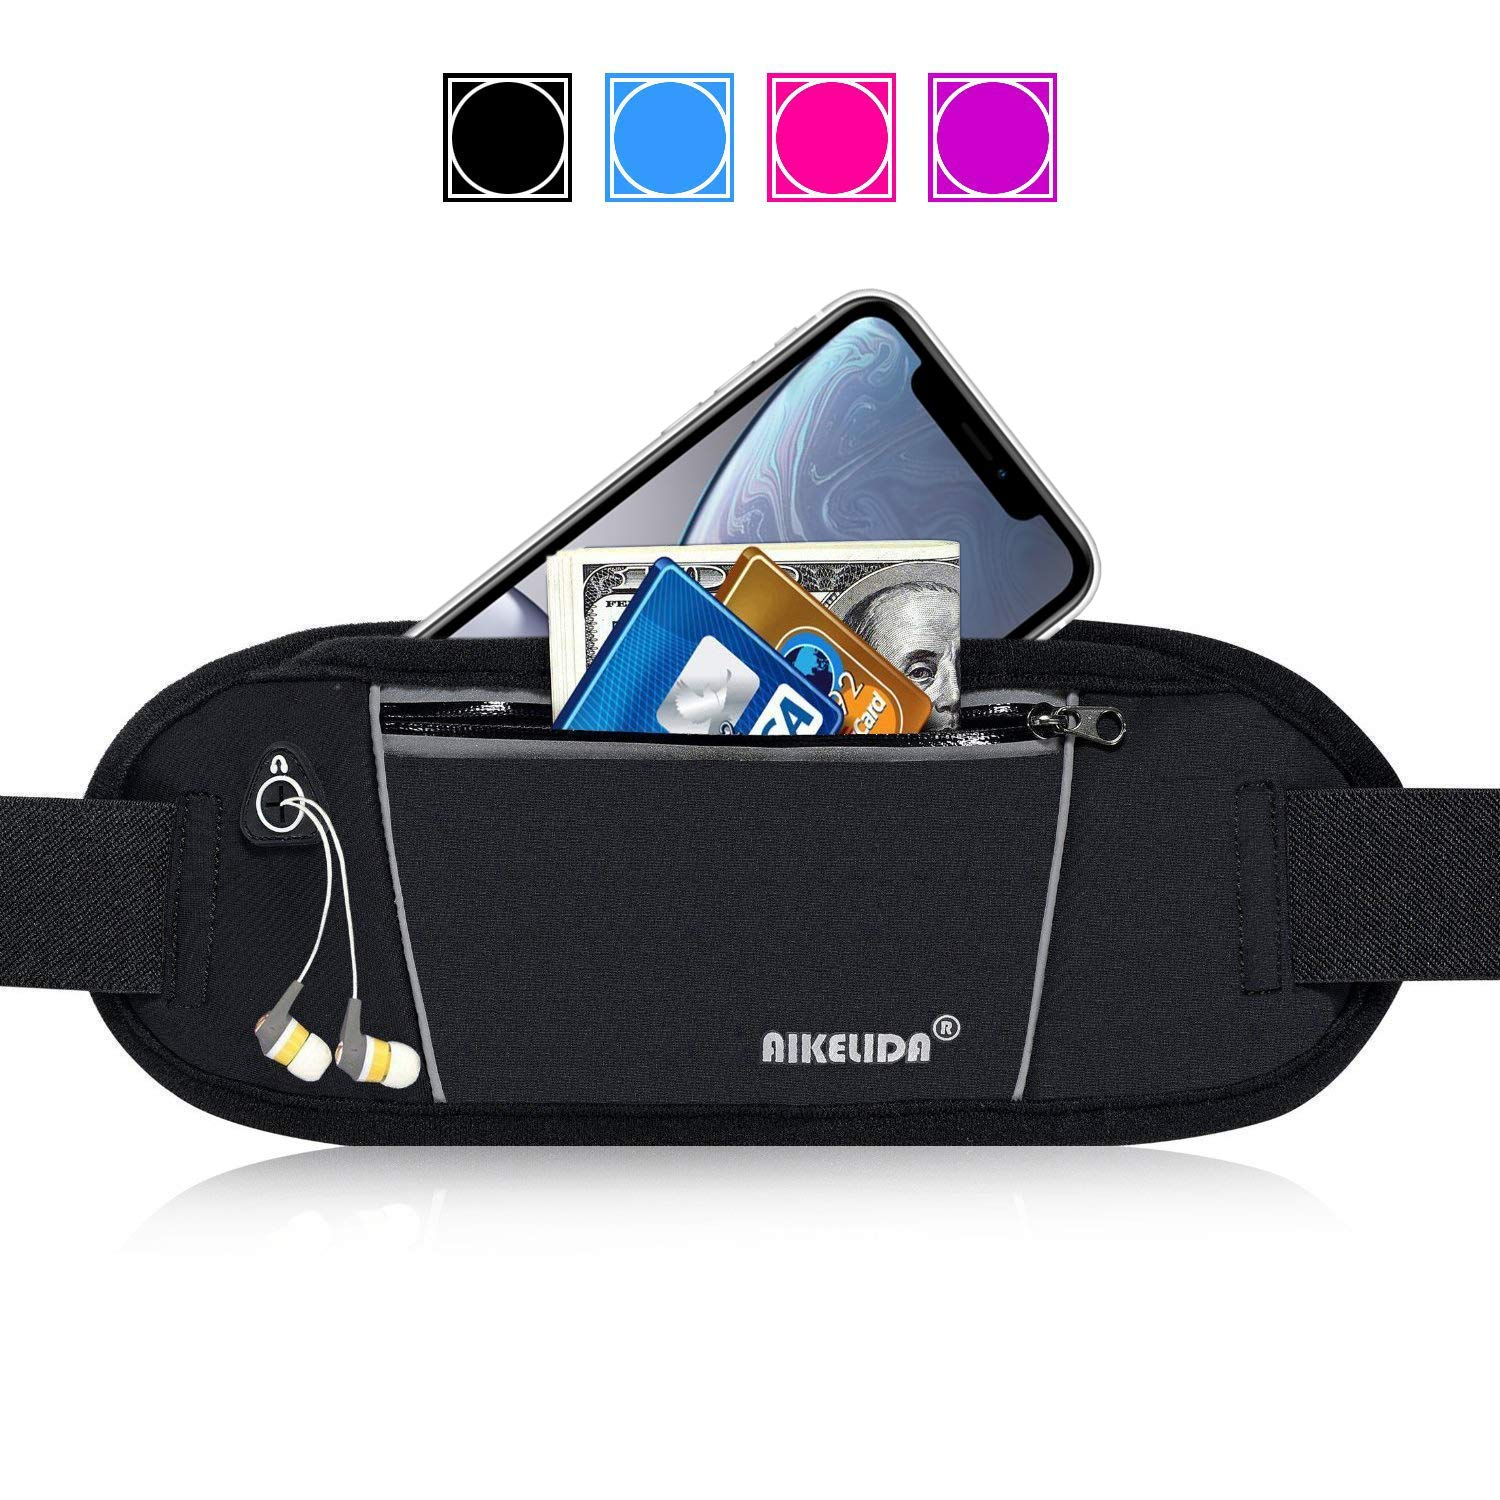 Breathable comfy fanny pack running belt for your phone, cards, and cash.